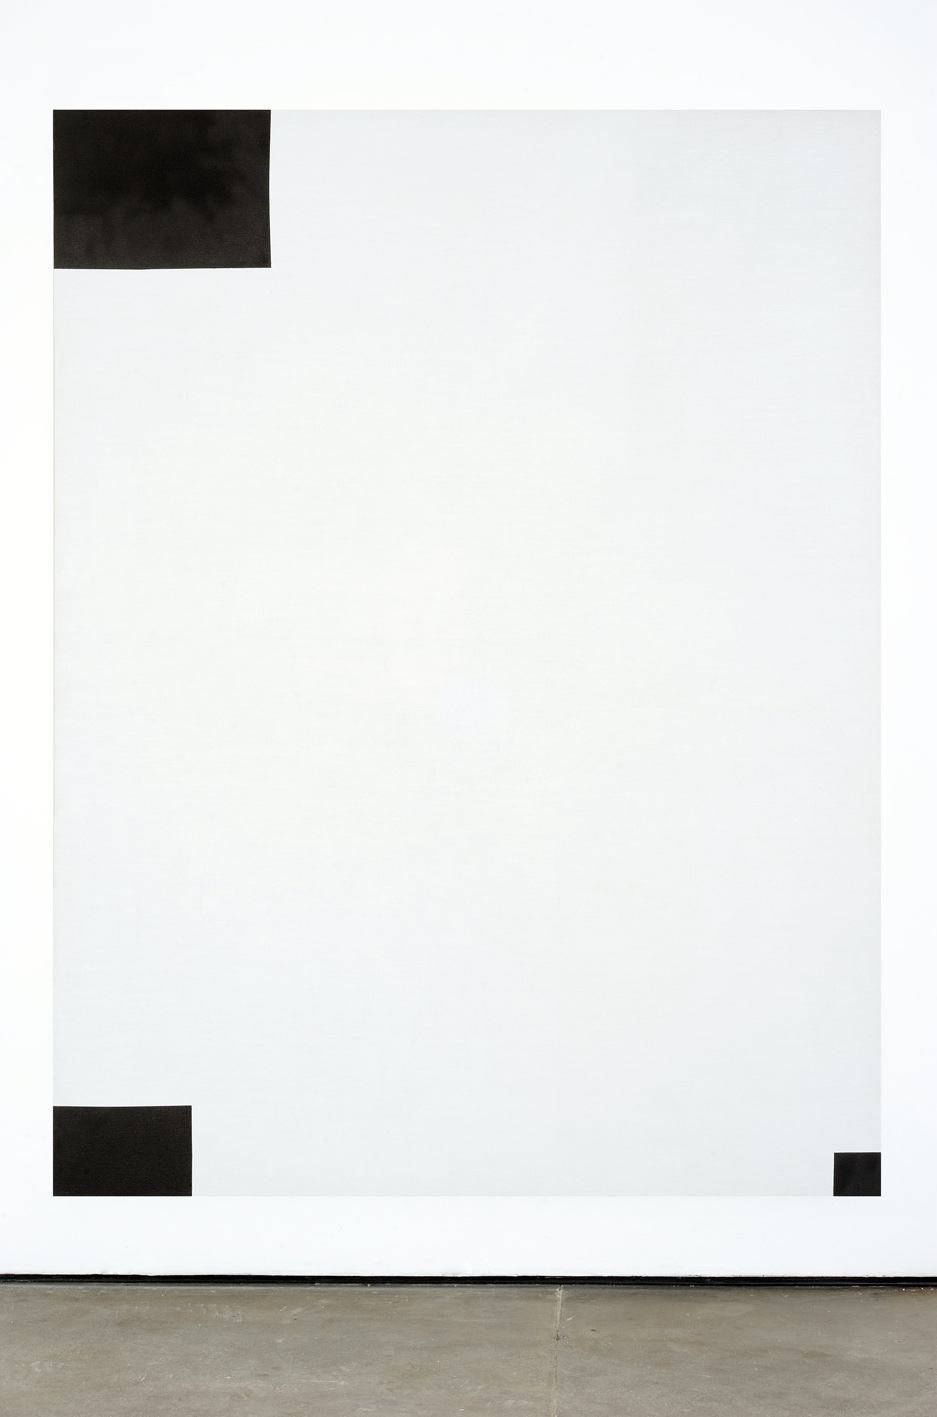 Untitled  2010  Acrylic gesso on canvas  202 x 151 cm / 79.5 x 59.4 in